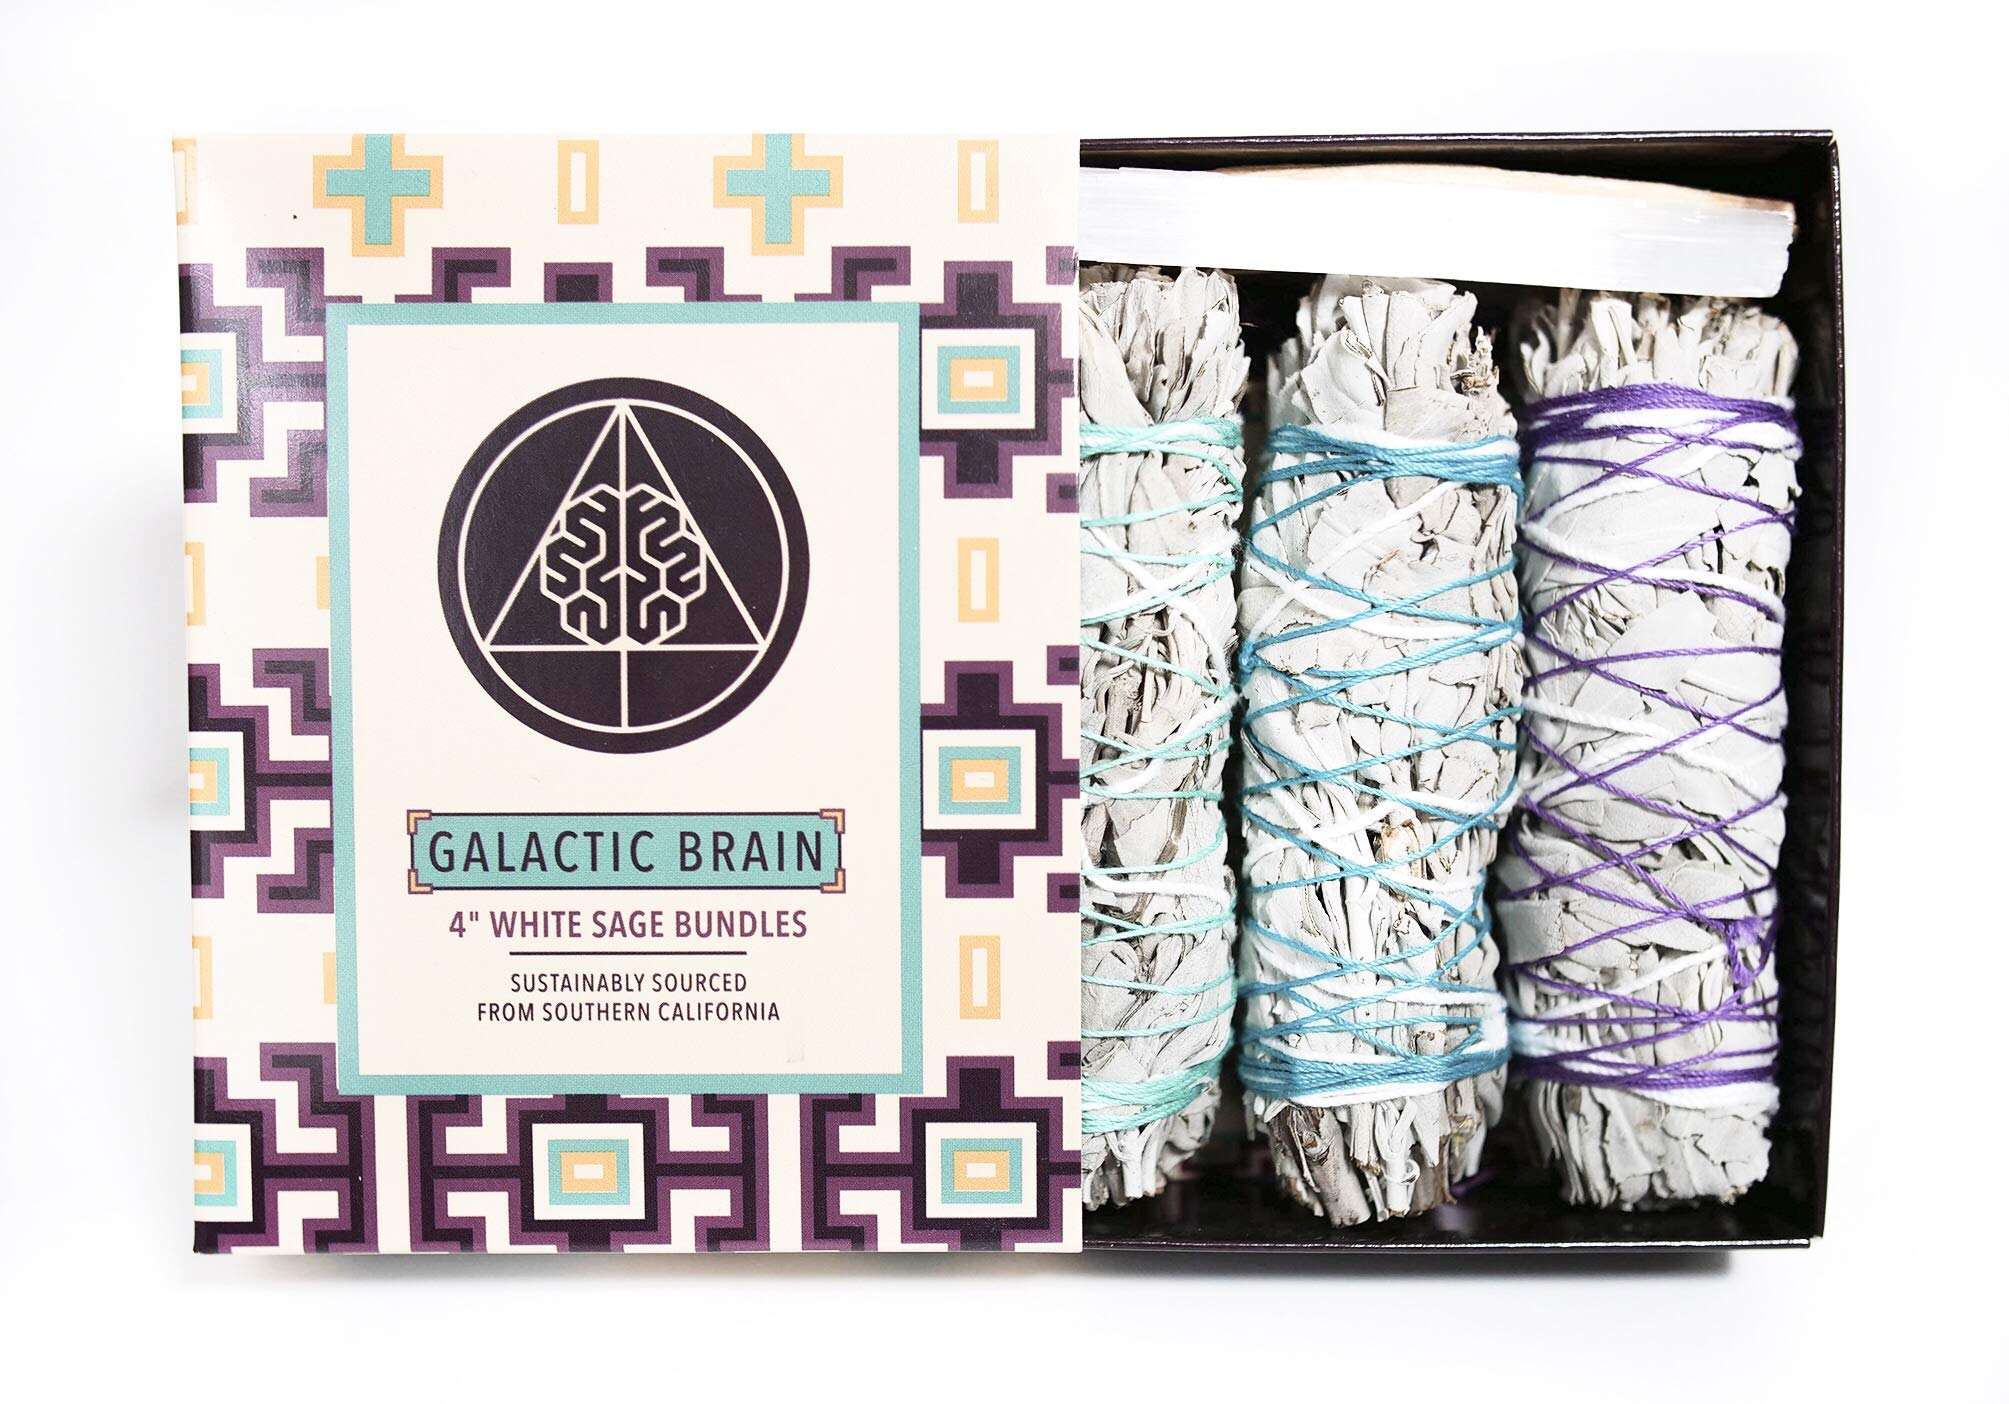 Galactic Brain 4 Inch White Sage Bundles | 3 White Sage Smudge Sticks with 2 Sample Palo Santo Sticks and 1 Selenite Crystal in Gift Set for Cleansing Your Home